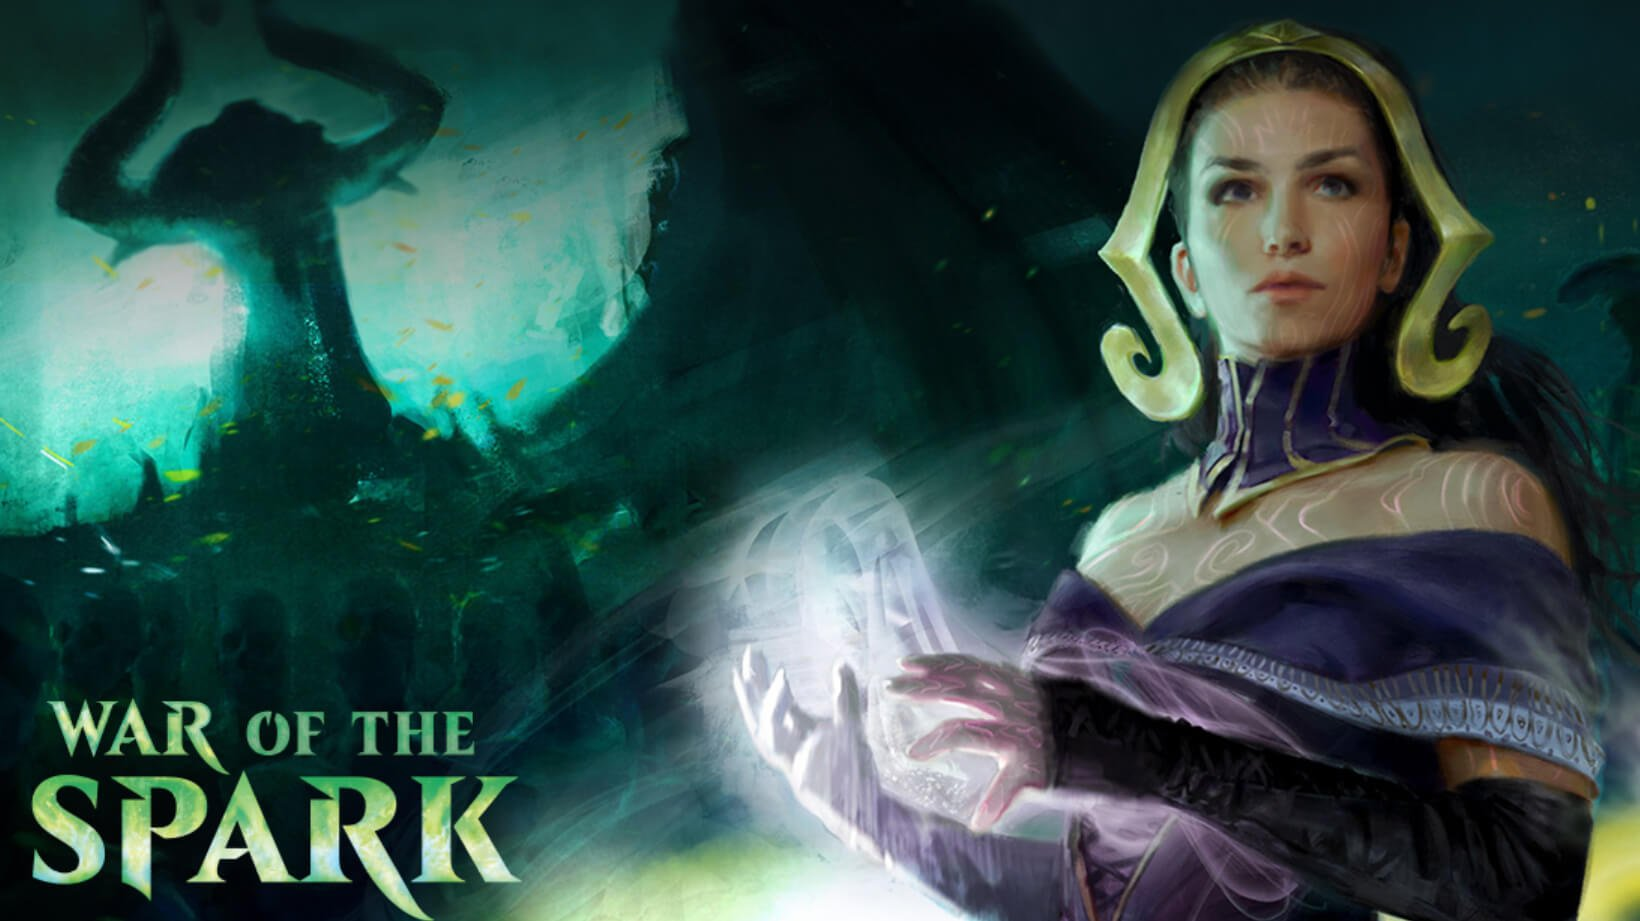 war-of-the-spark-promotional